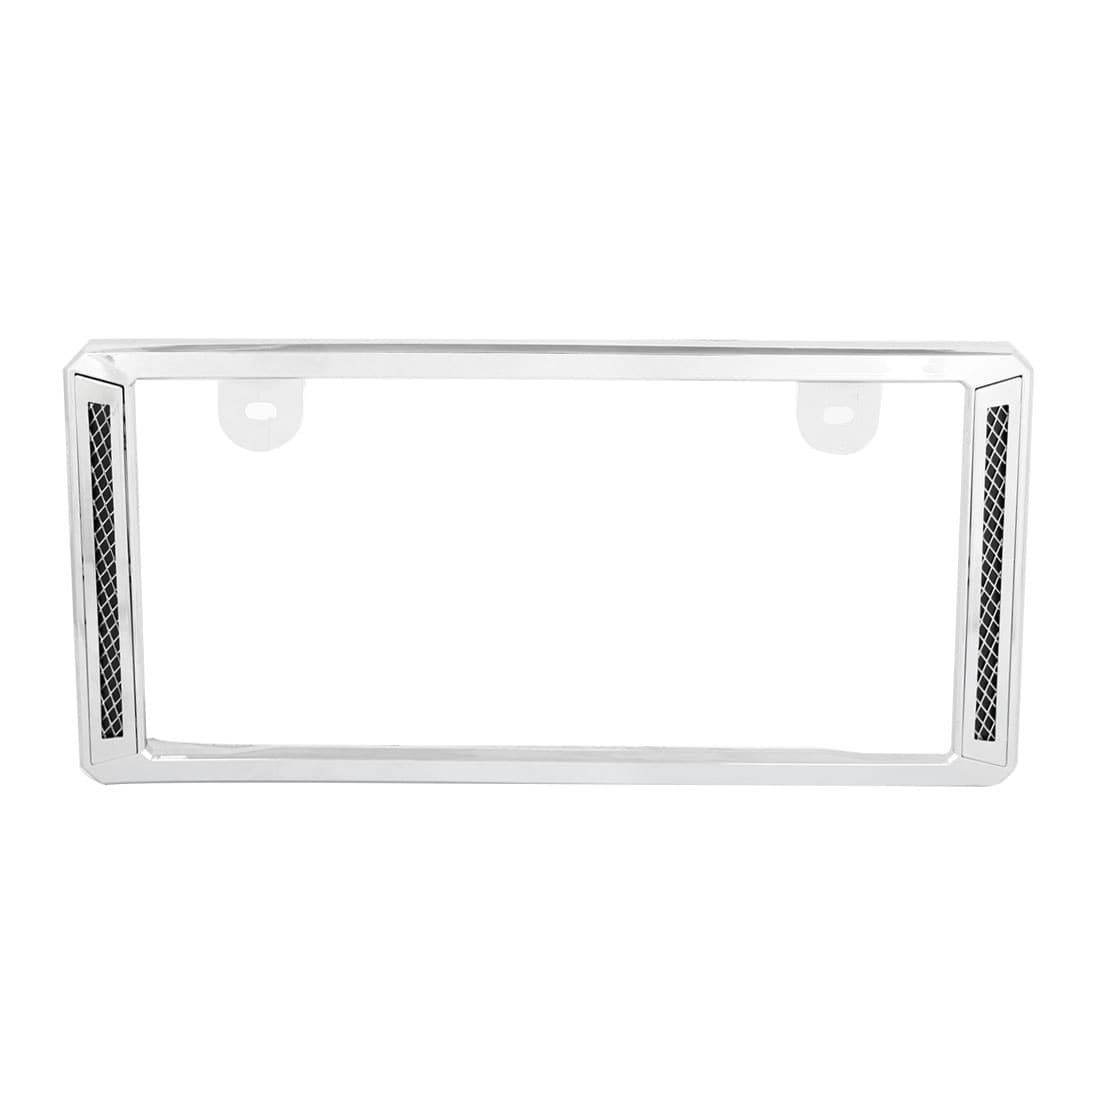 Unique Bargains Vehicle Car Plastic License Plate Frame Holder Silver Tone  sc 1 st  Pinterest & Unique Bargains Vehicle Car Plastic License Plate Frame Holder ...